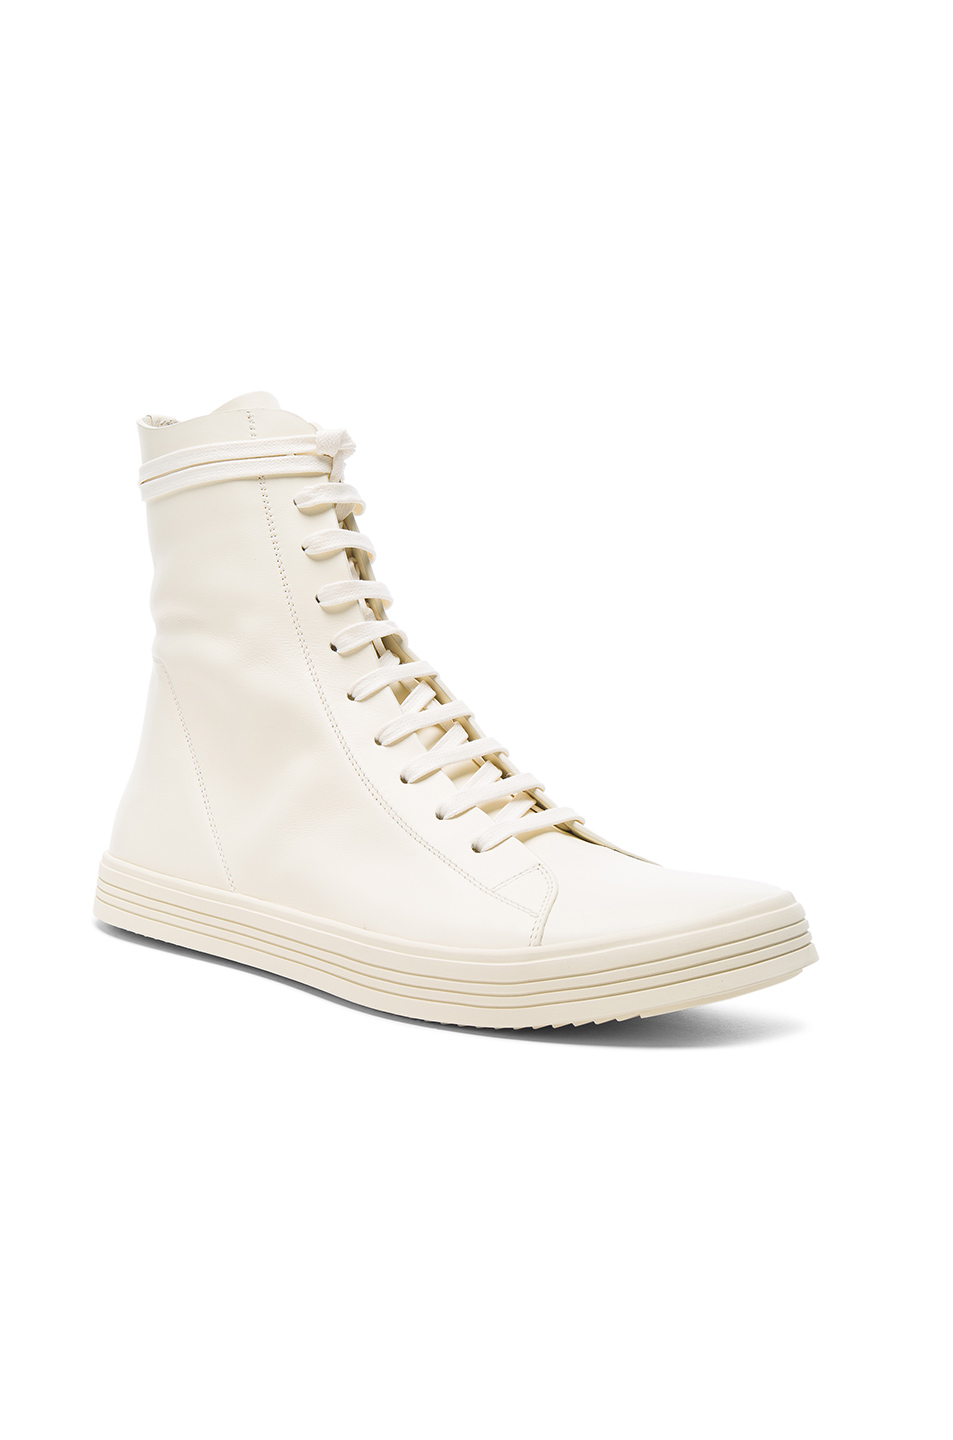 Rick Owens Leather Mastodon Sneaks in White